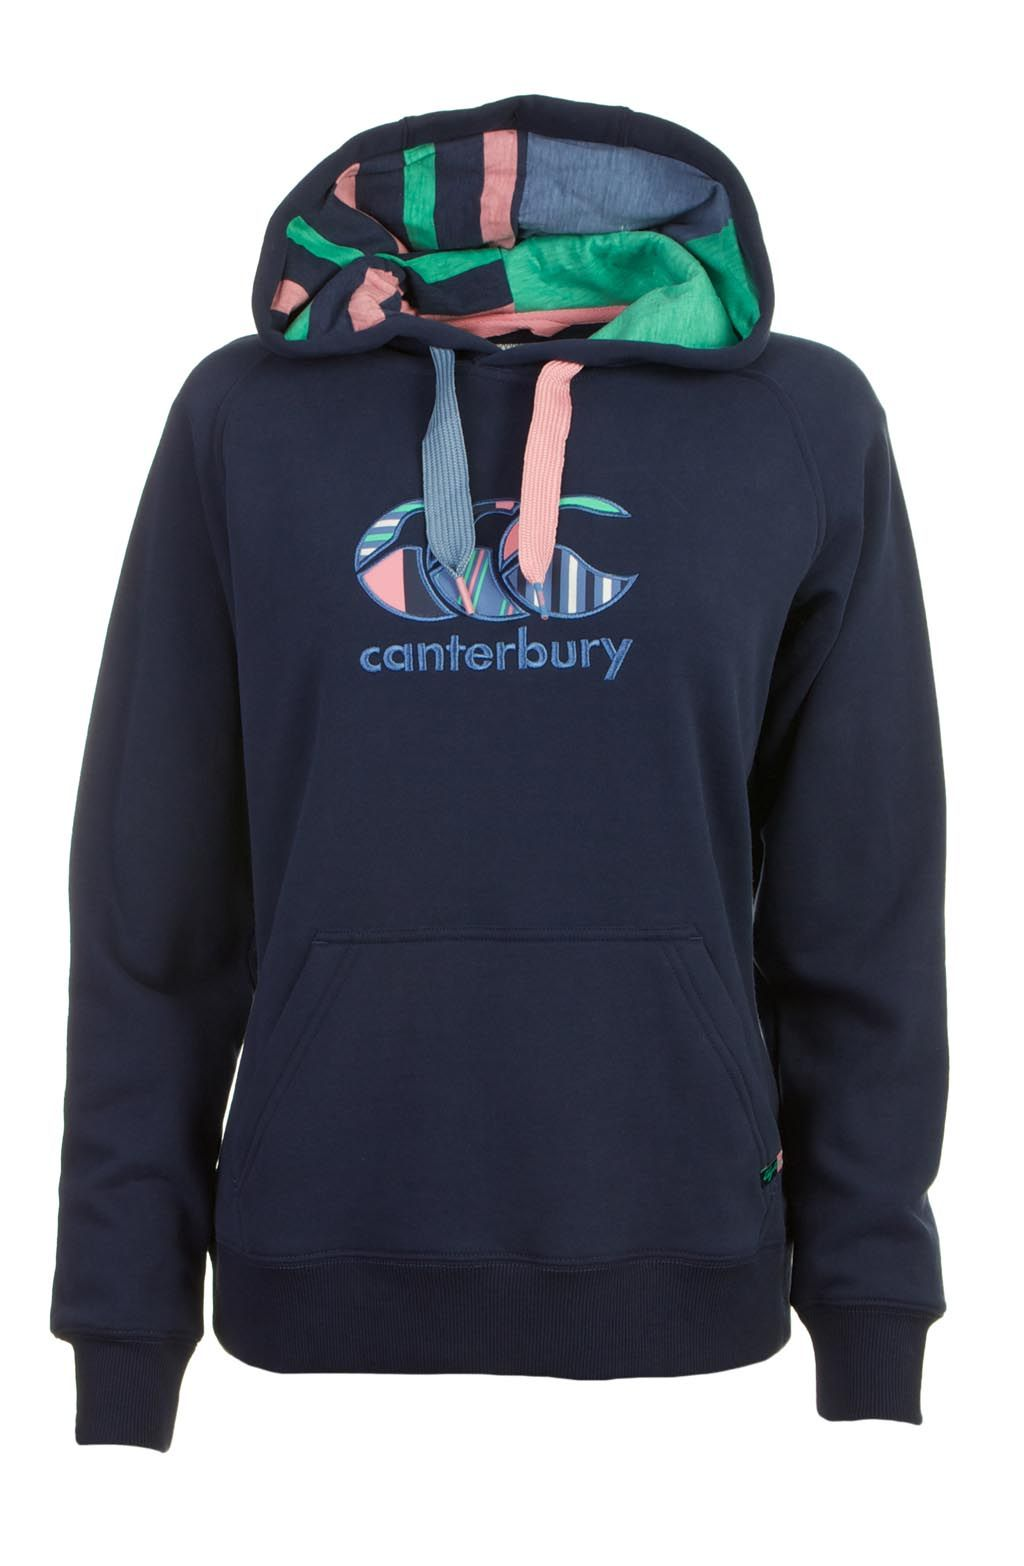 3902523e9a694 Buy Australia's Best Sports Lifestyle Clothing and Accessories - Canterbury  NZ - Shop - Hoodies / jumpers - UGLIES PULLOVER HOODIE